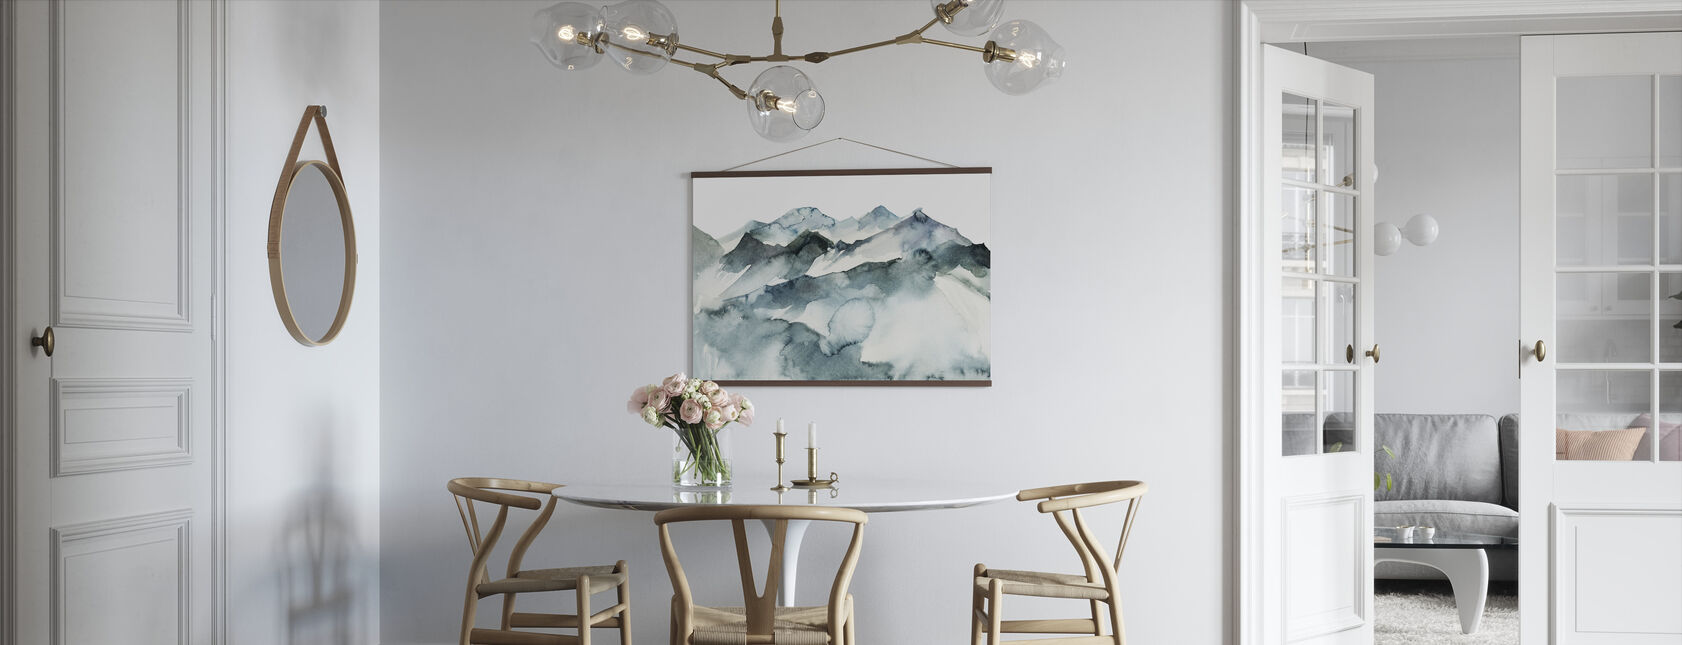 Watercolor Mountains - Poster - Kitchen